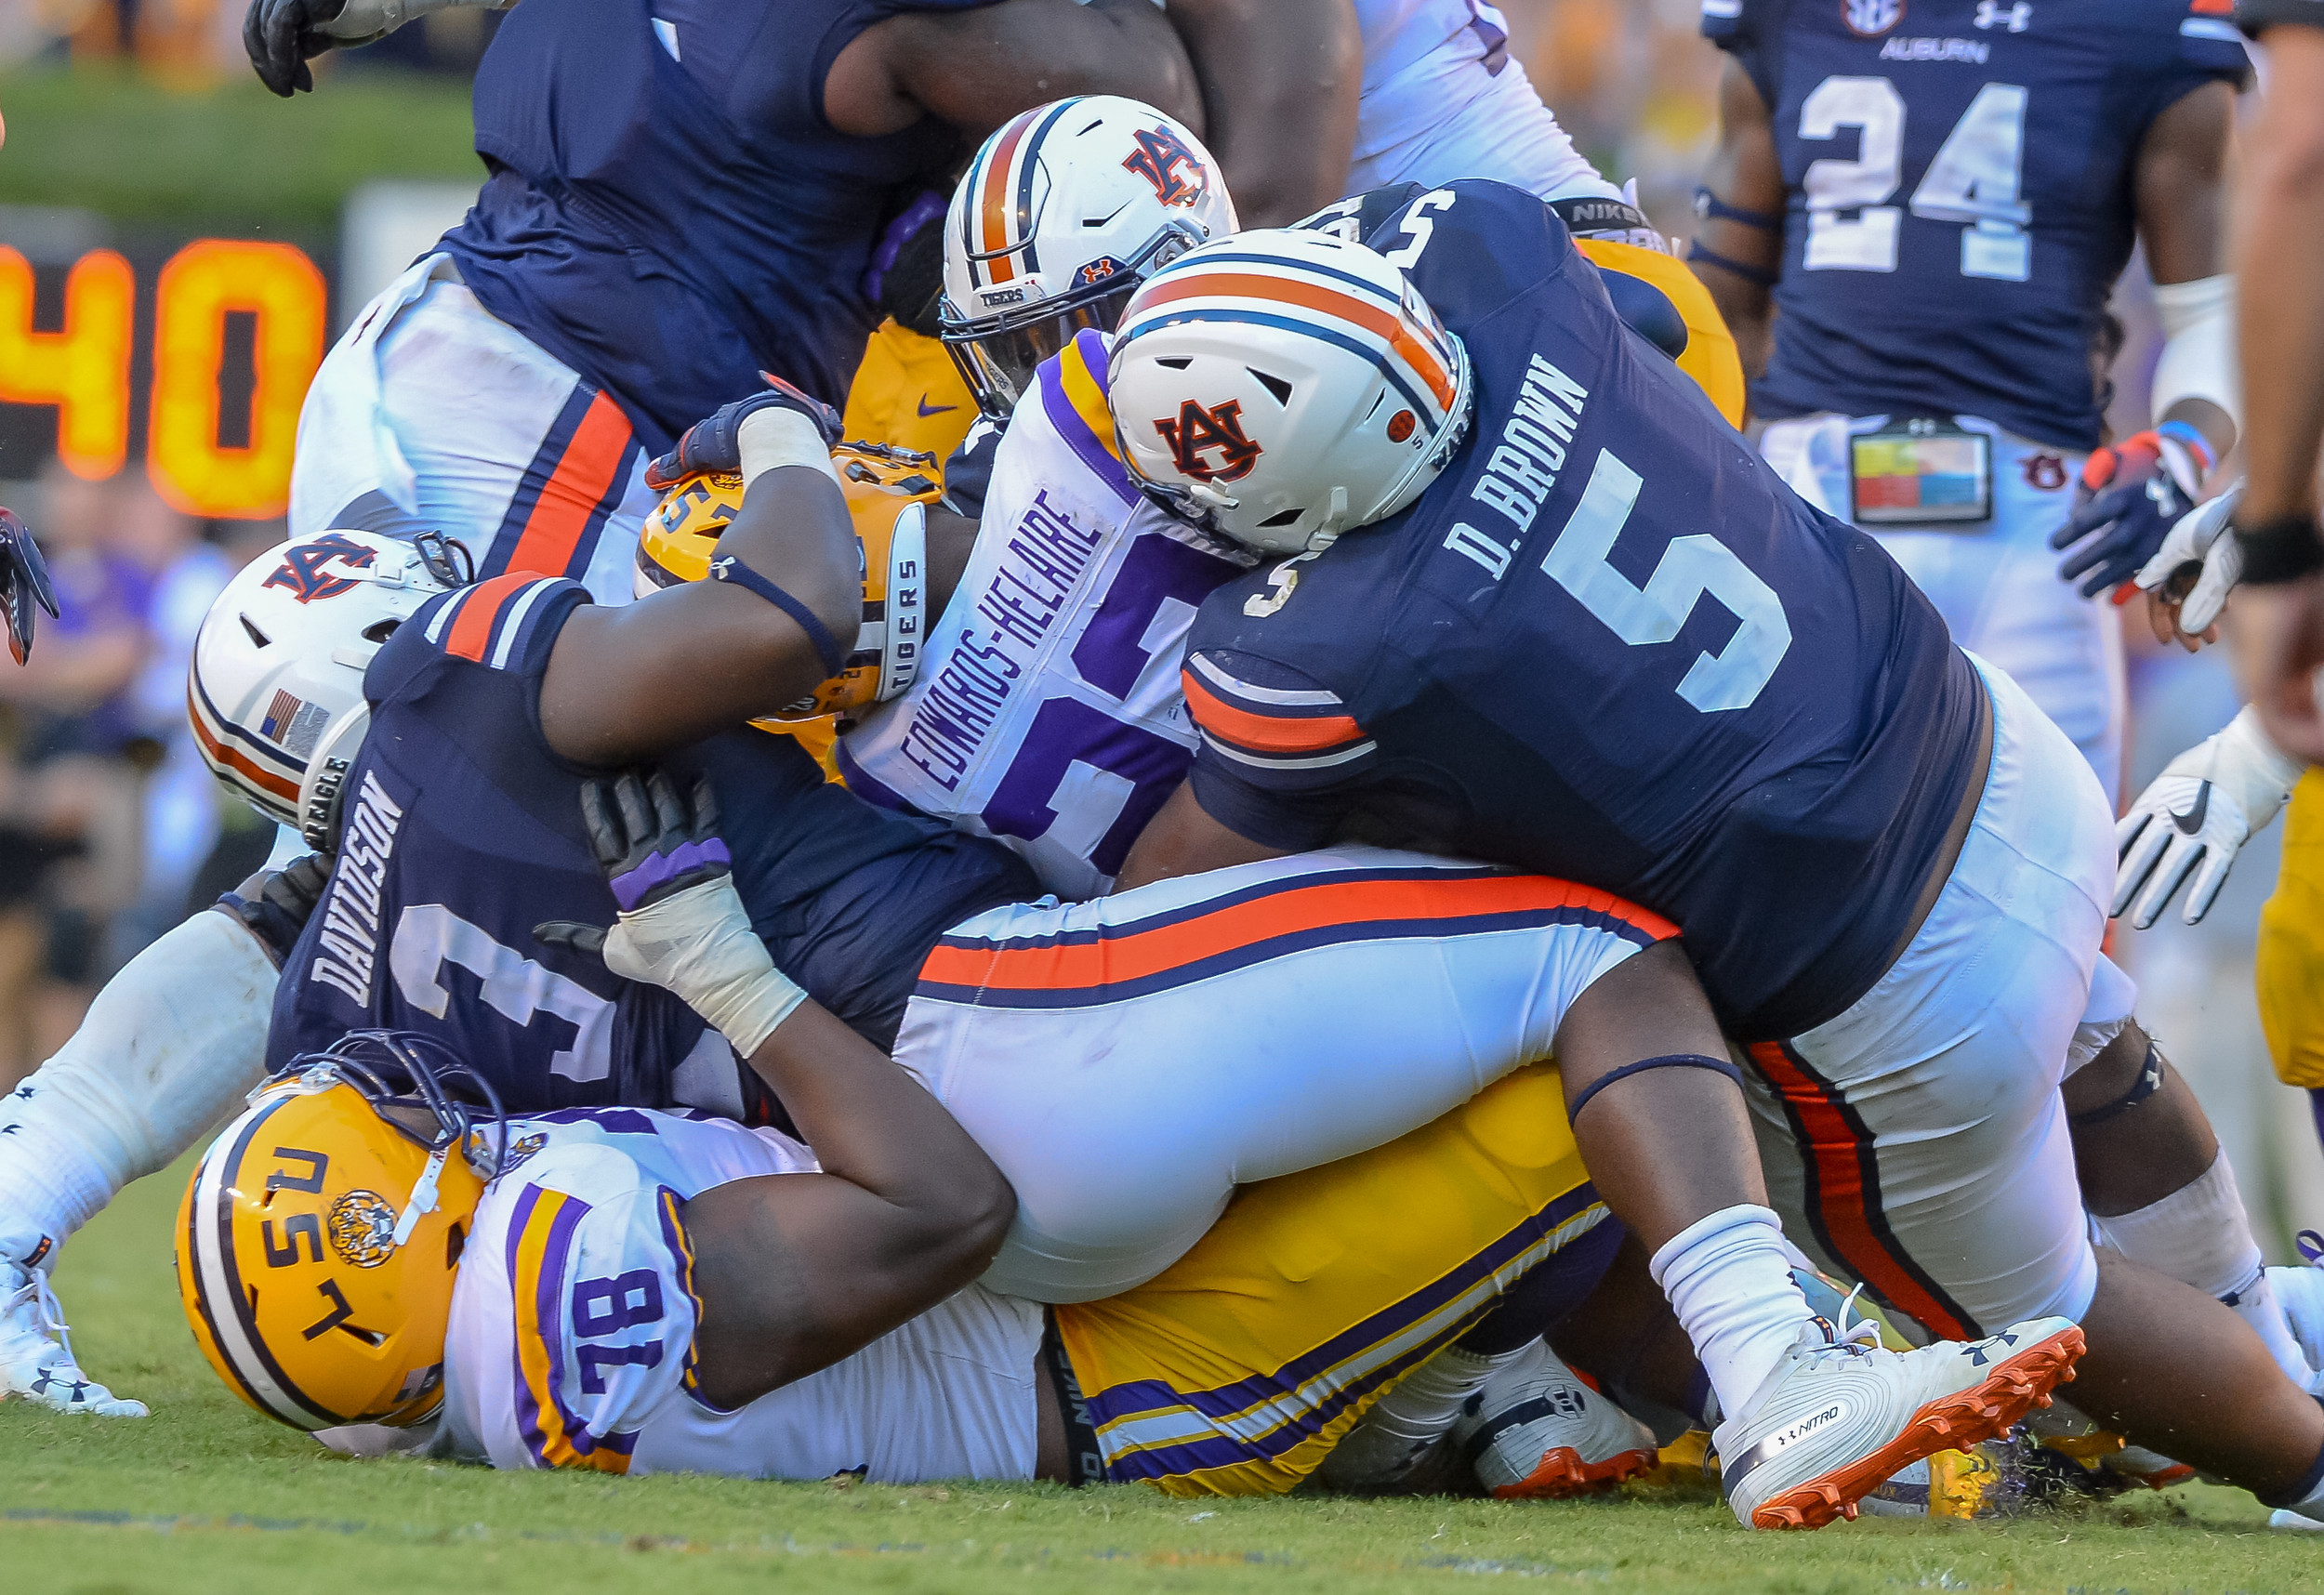 LSU Tigers running back Clyde Edwards-Helaire (22) is tackled by Auburn Tigers defensive linemen Marlon Davidson (3) and Derrick Brown (5) during the second half of Saturday's game, at Jordan Hare Stadium in Auburn Atlanta. (Contributed by Jeff Johnsey)